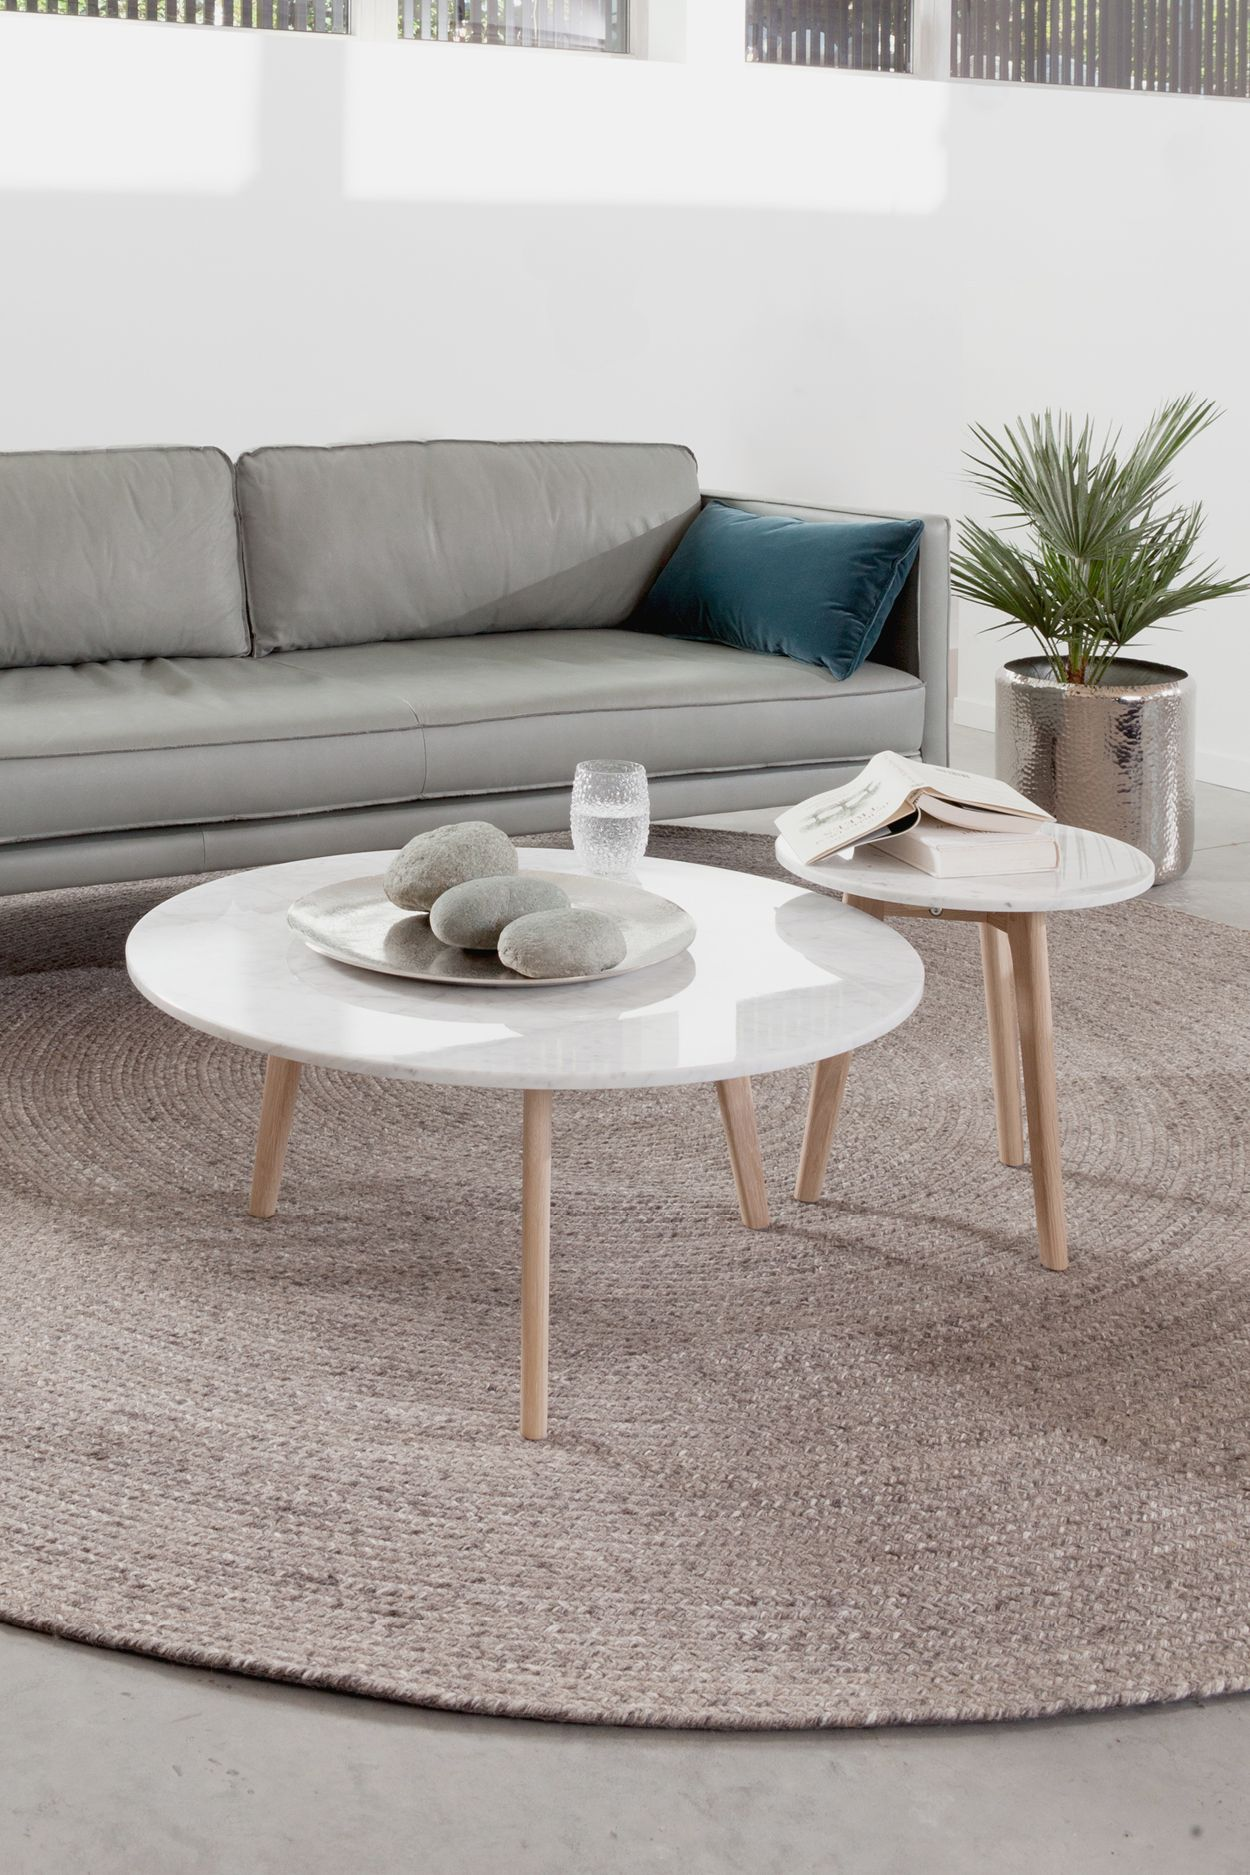 nesting table, white marble top, grey rattan rug, grey sofa, seamless floor